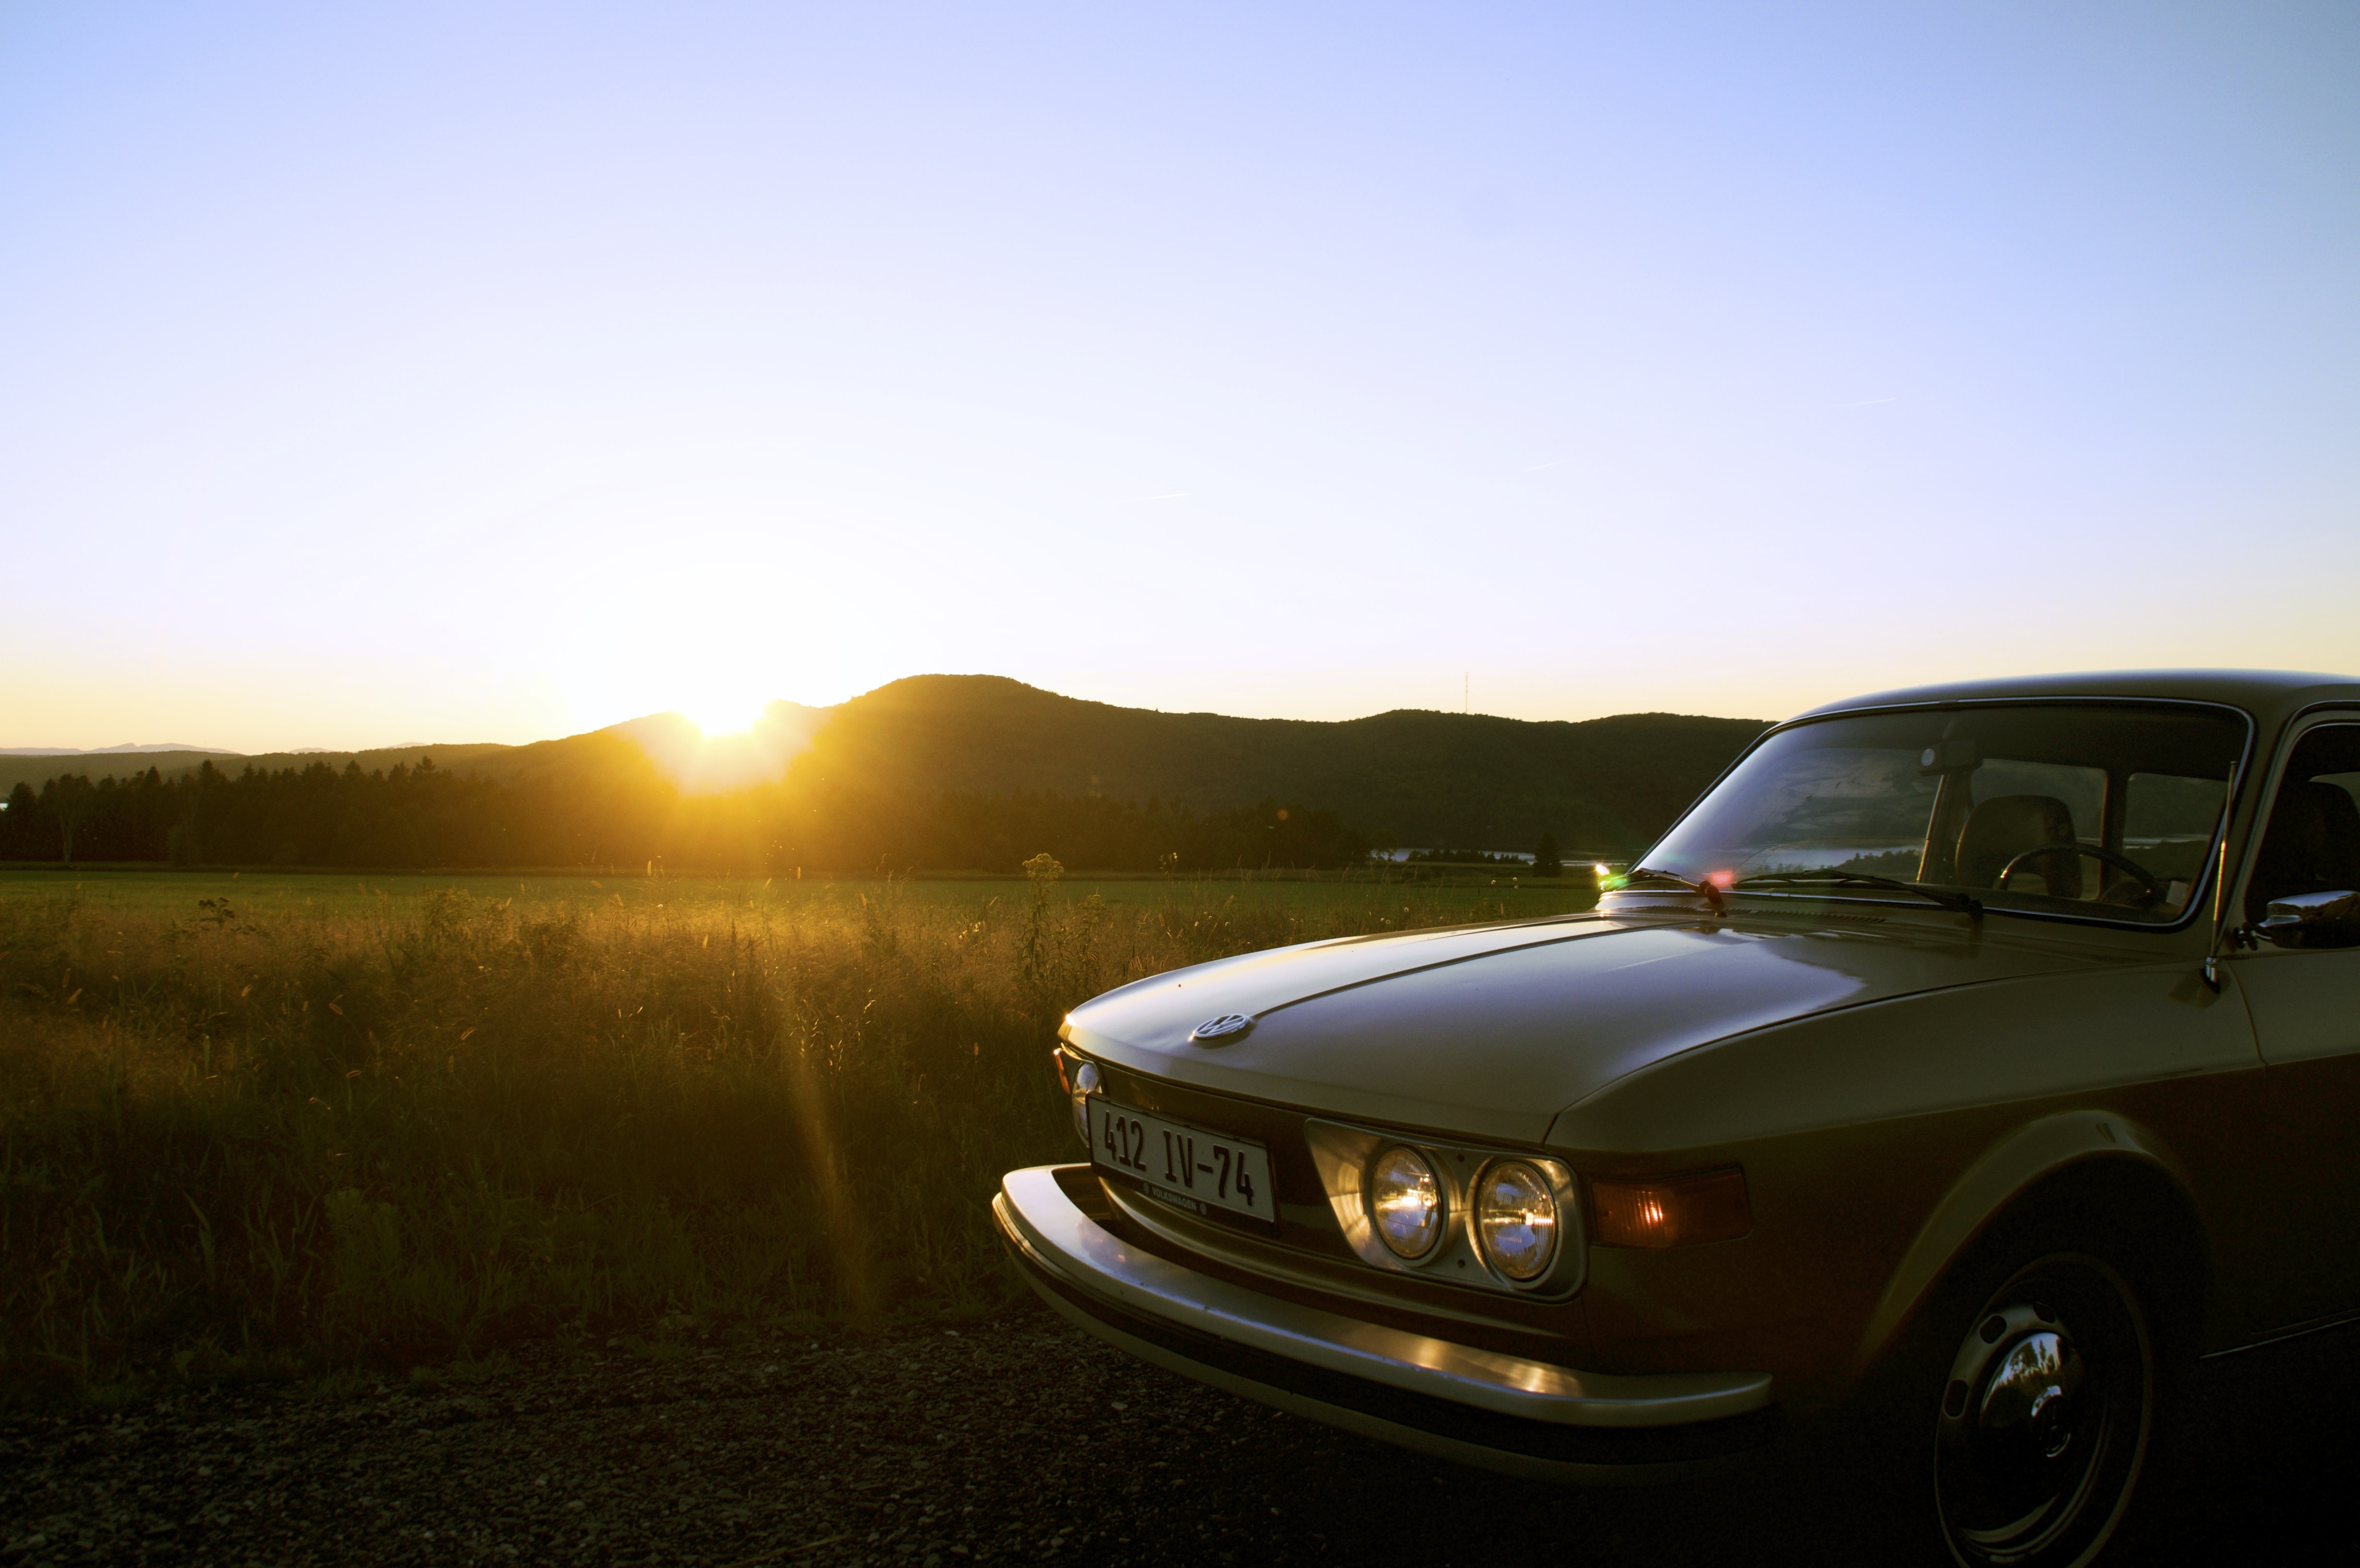 Vintage car parked near a field at sunset